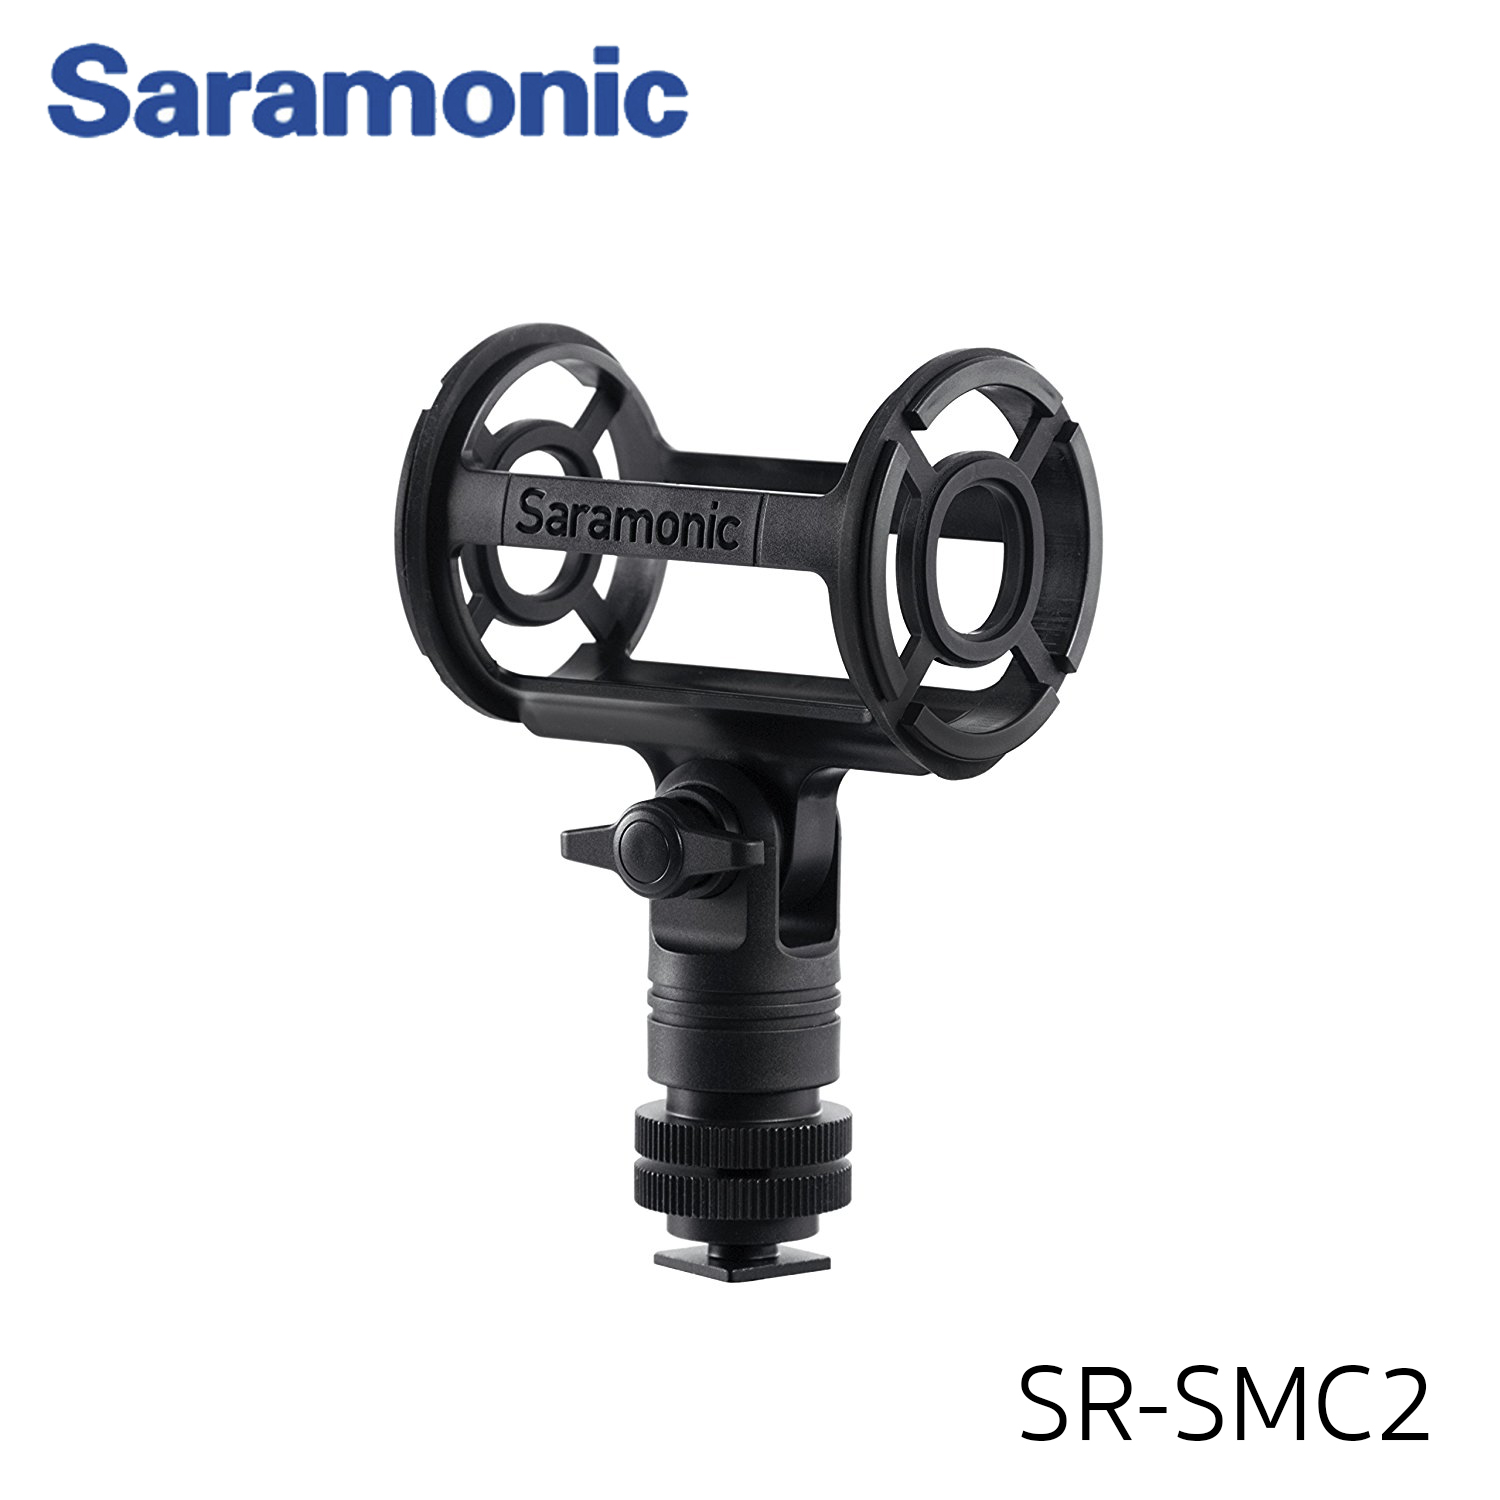 """Saramonic SR-SMC2 Shotgun Microphone Shockmount with Cold Shoe, 1/4"""", 3/8"""", & 5/8"""" Threads for Cameras, Tripods, Stands & Boom Poles"""